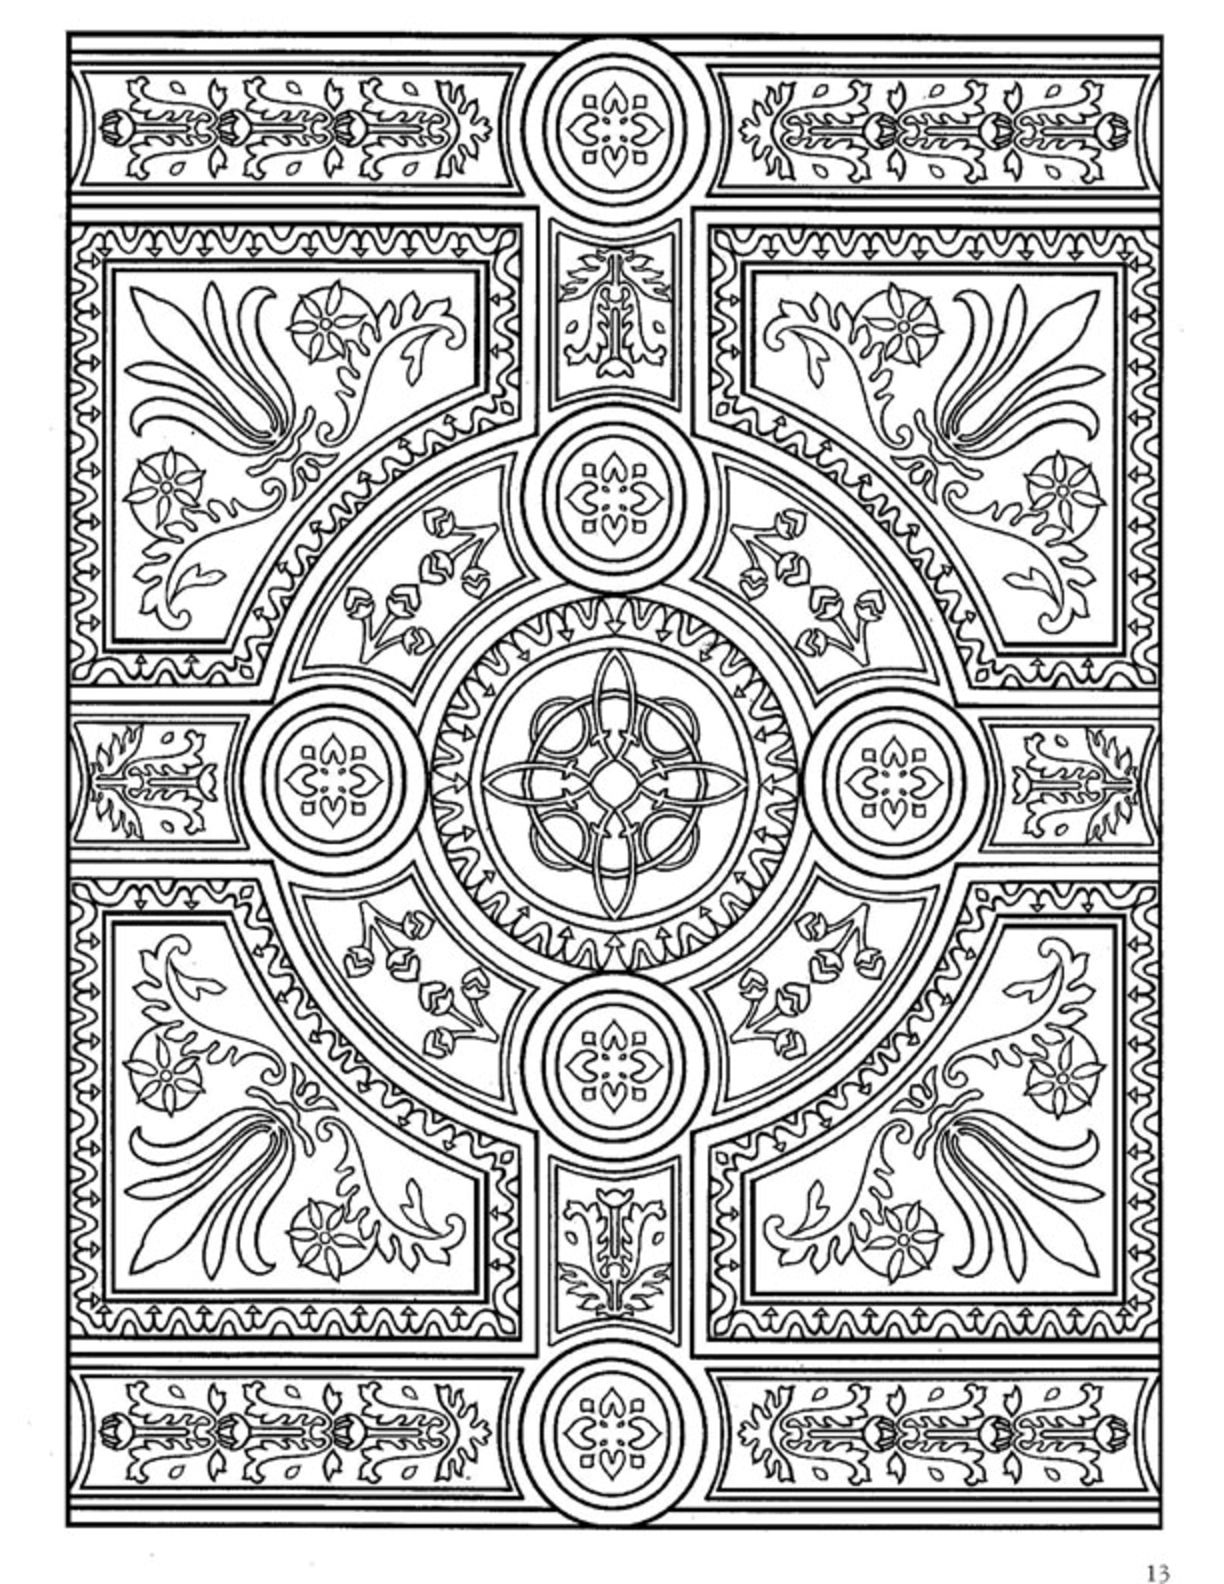 Dover Decorative Tile Coloring Book | Cool coloring pages ... - photo#24